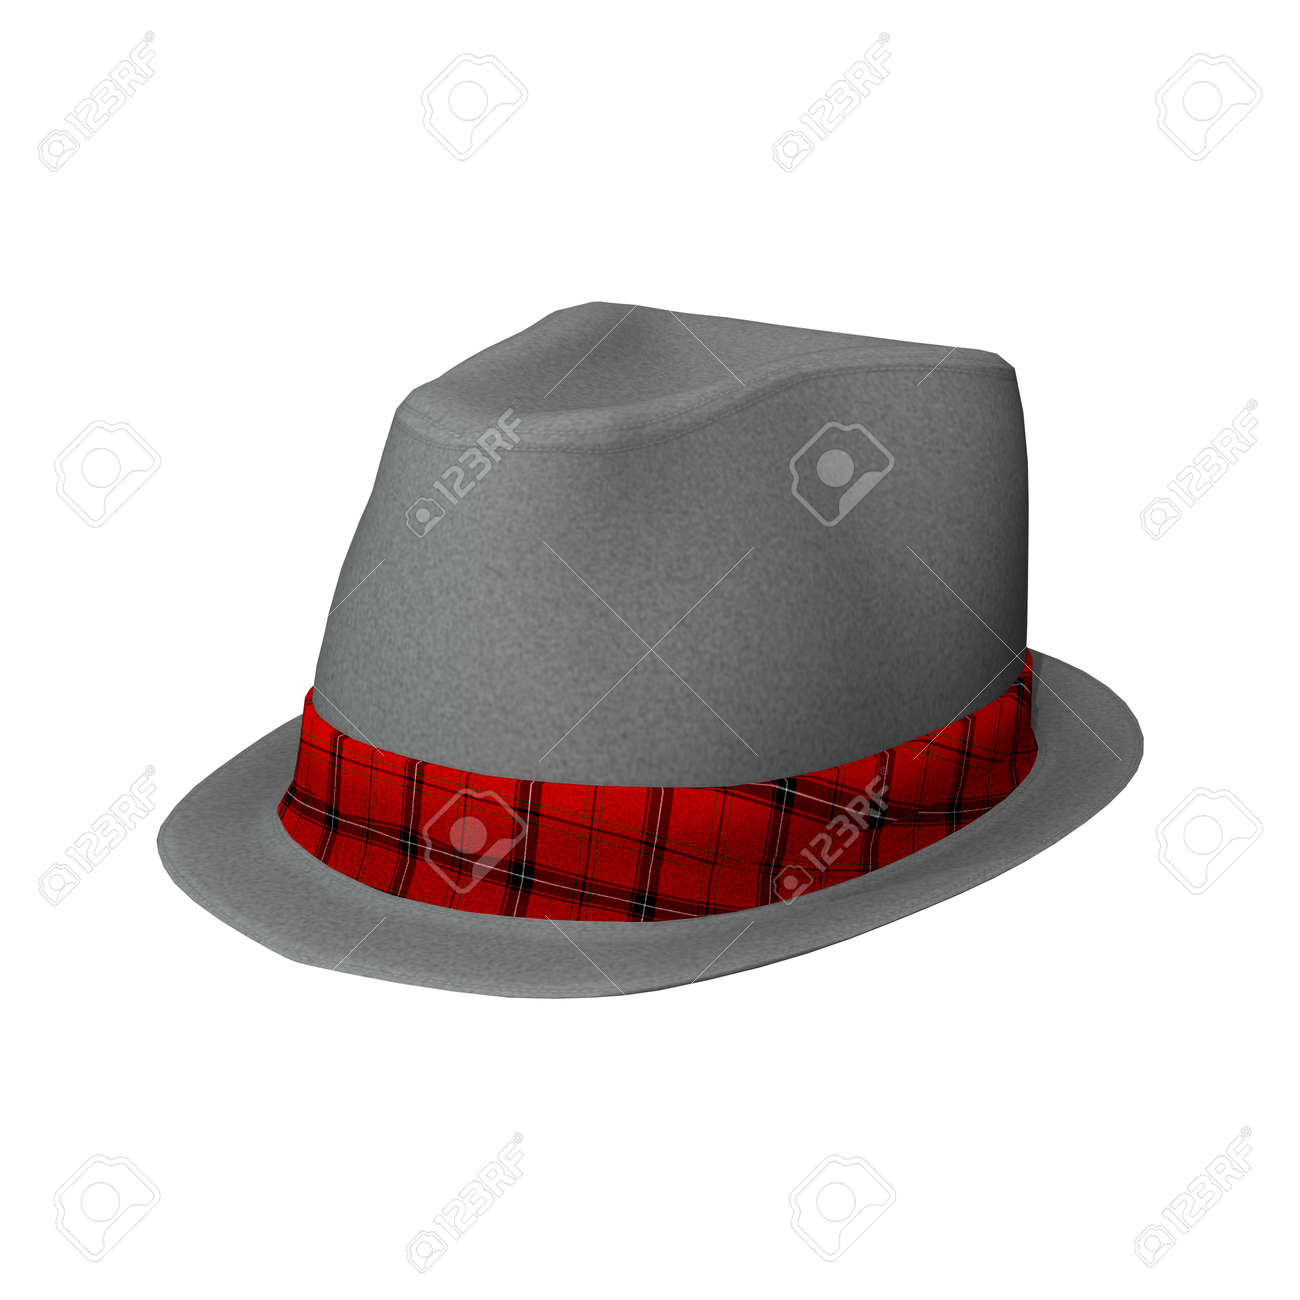 3D digital render of an elegant man s hat isolated on white background  Stock Photo - 23840456 2b810a267b3